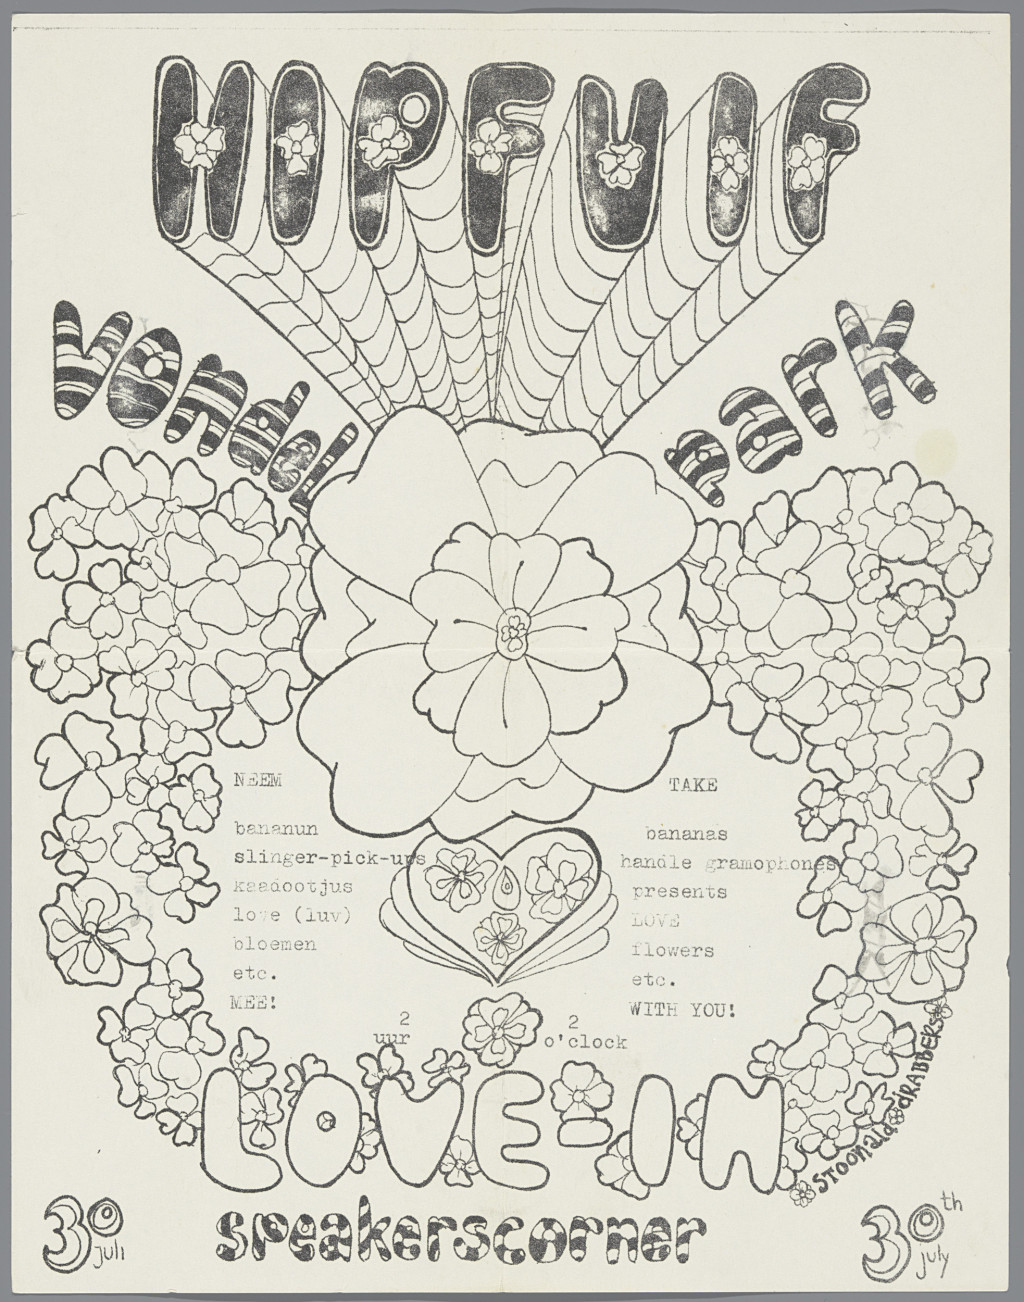 Love beasters, Love-in, hippie-happy, 1967. Collection Rijksmuseum, Amsterdam